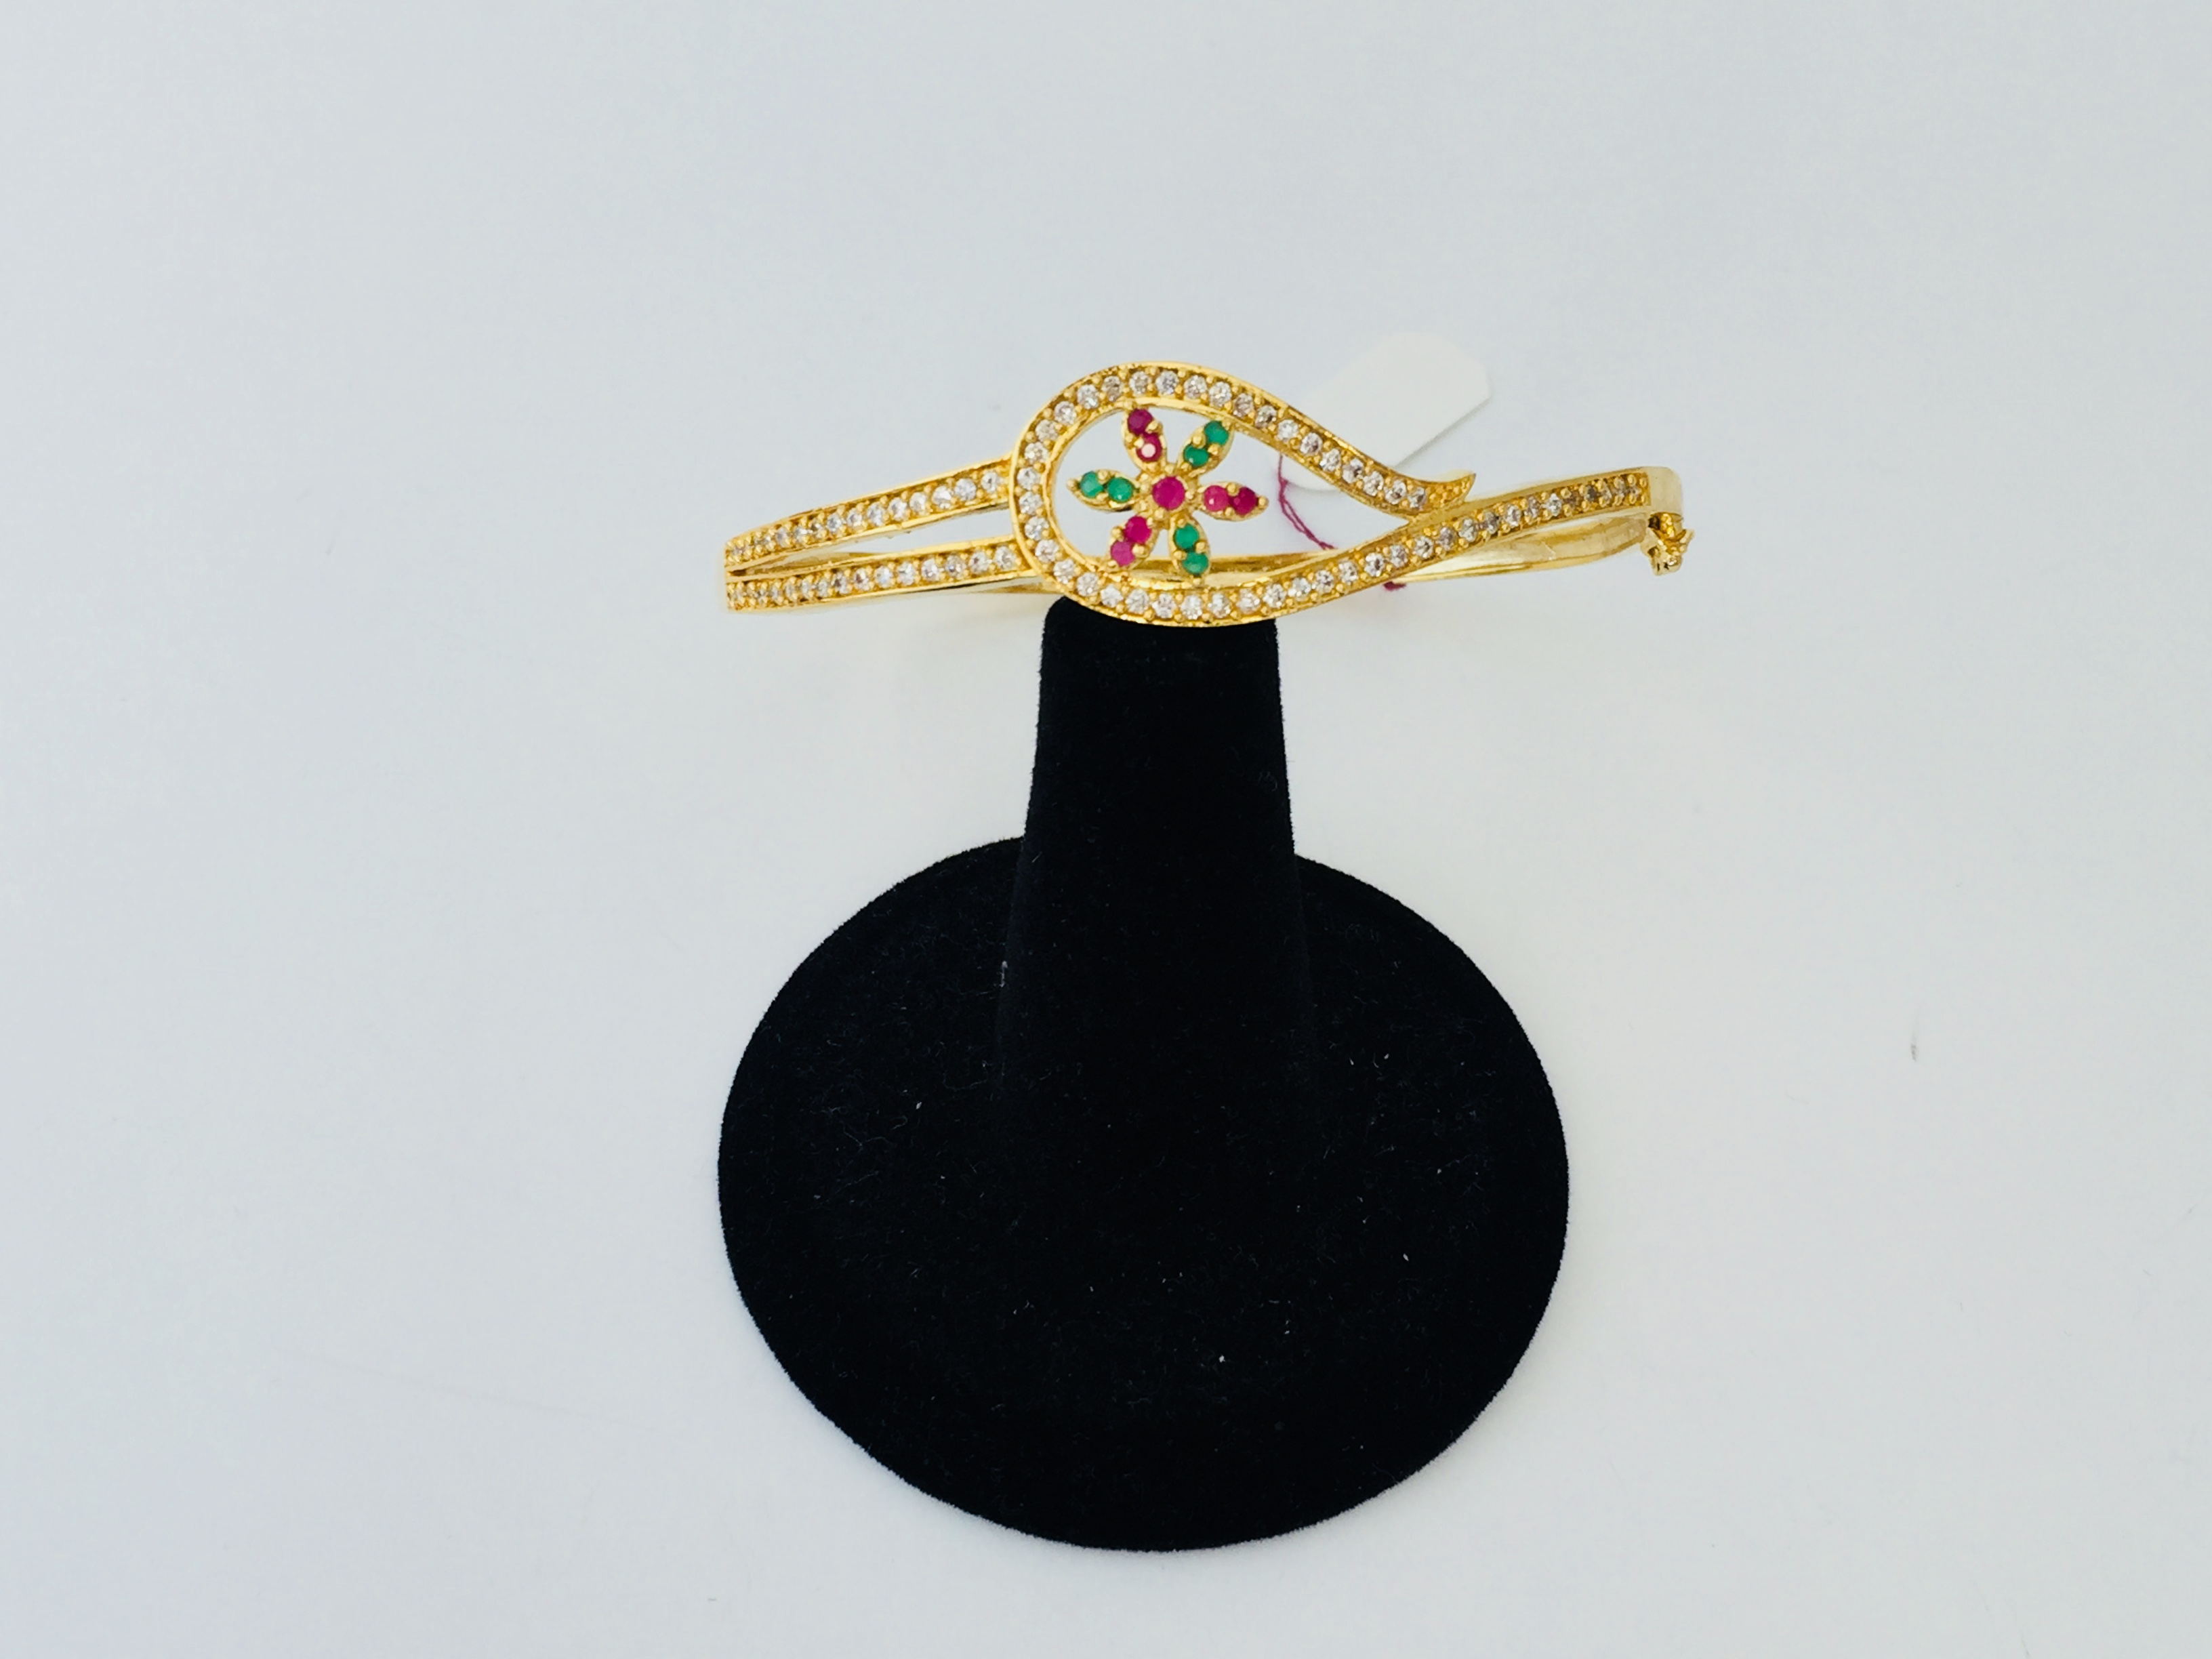 e5cb352ea33 Gorgeous Red and Green stone Floral Gold Bangle Bracelet decked in high  quality White Stones. A must buy!